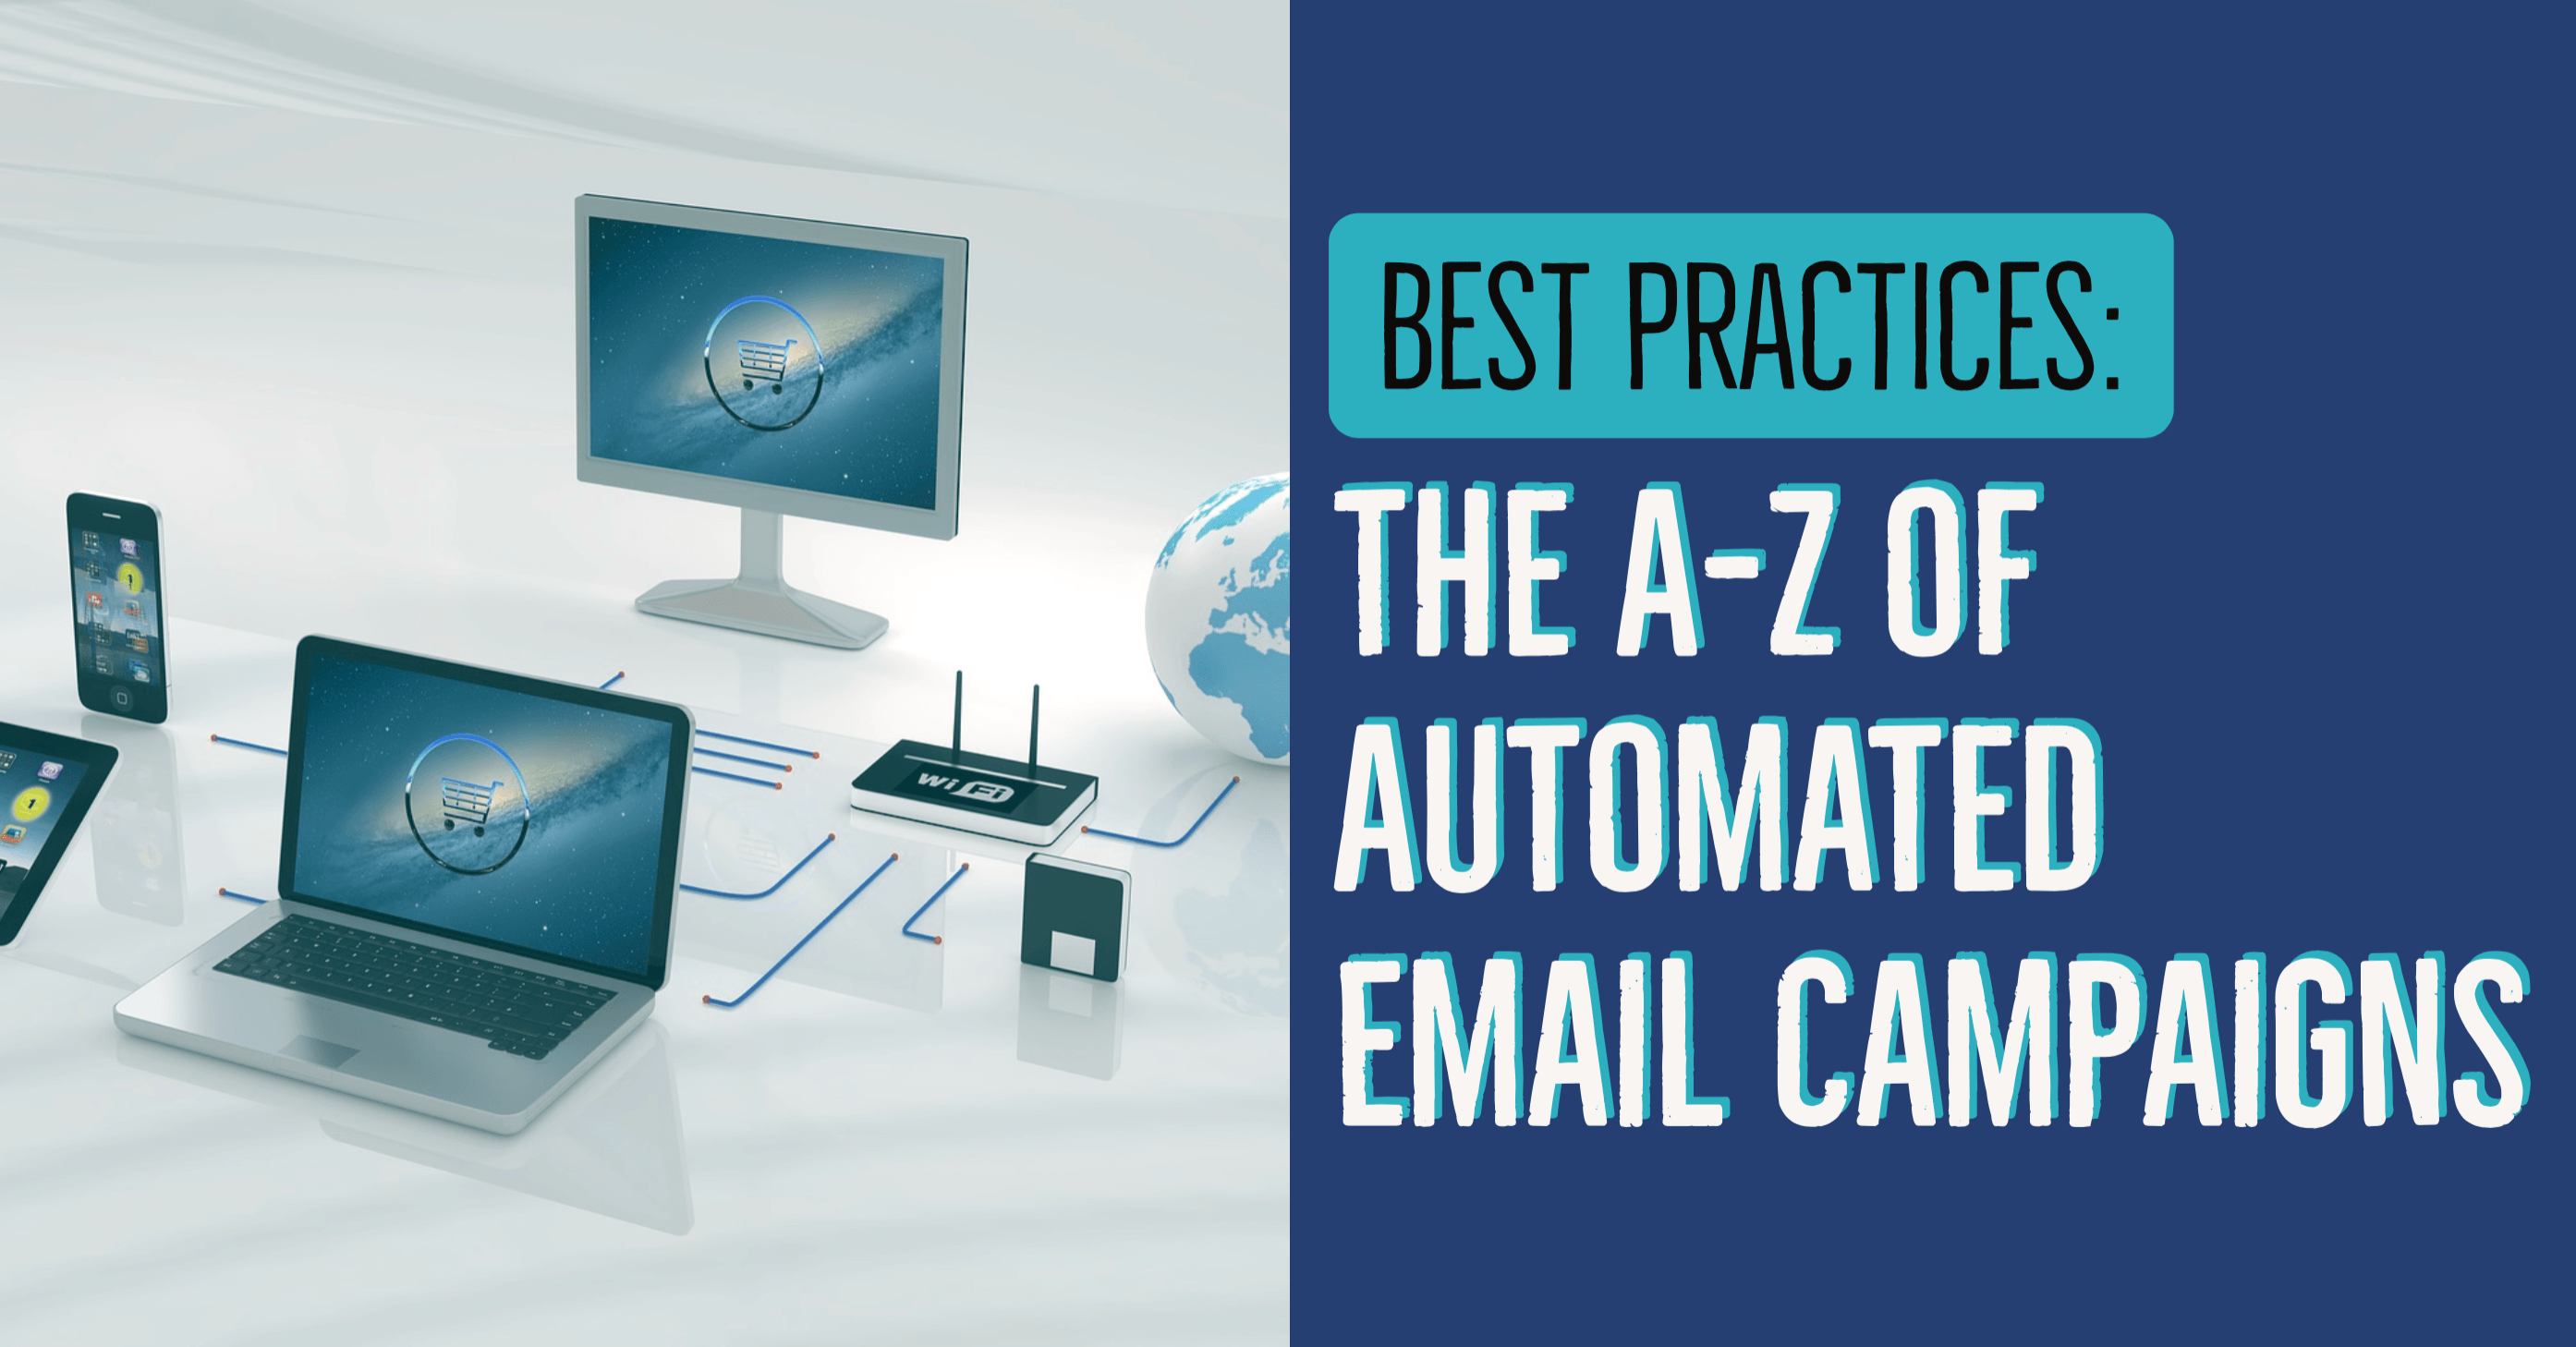 The A-Z of Automated Email Campaigns 13